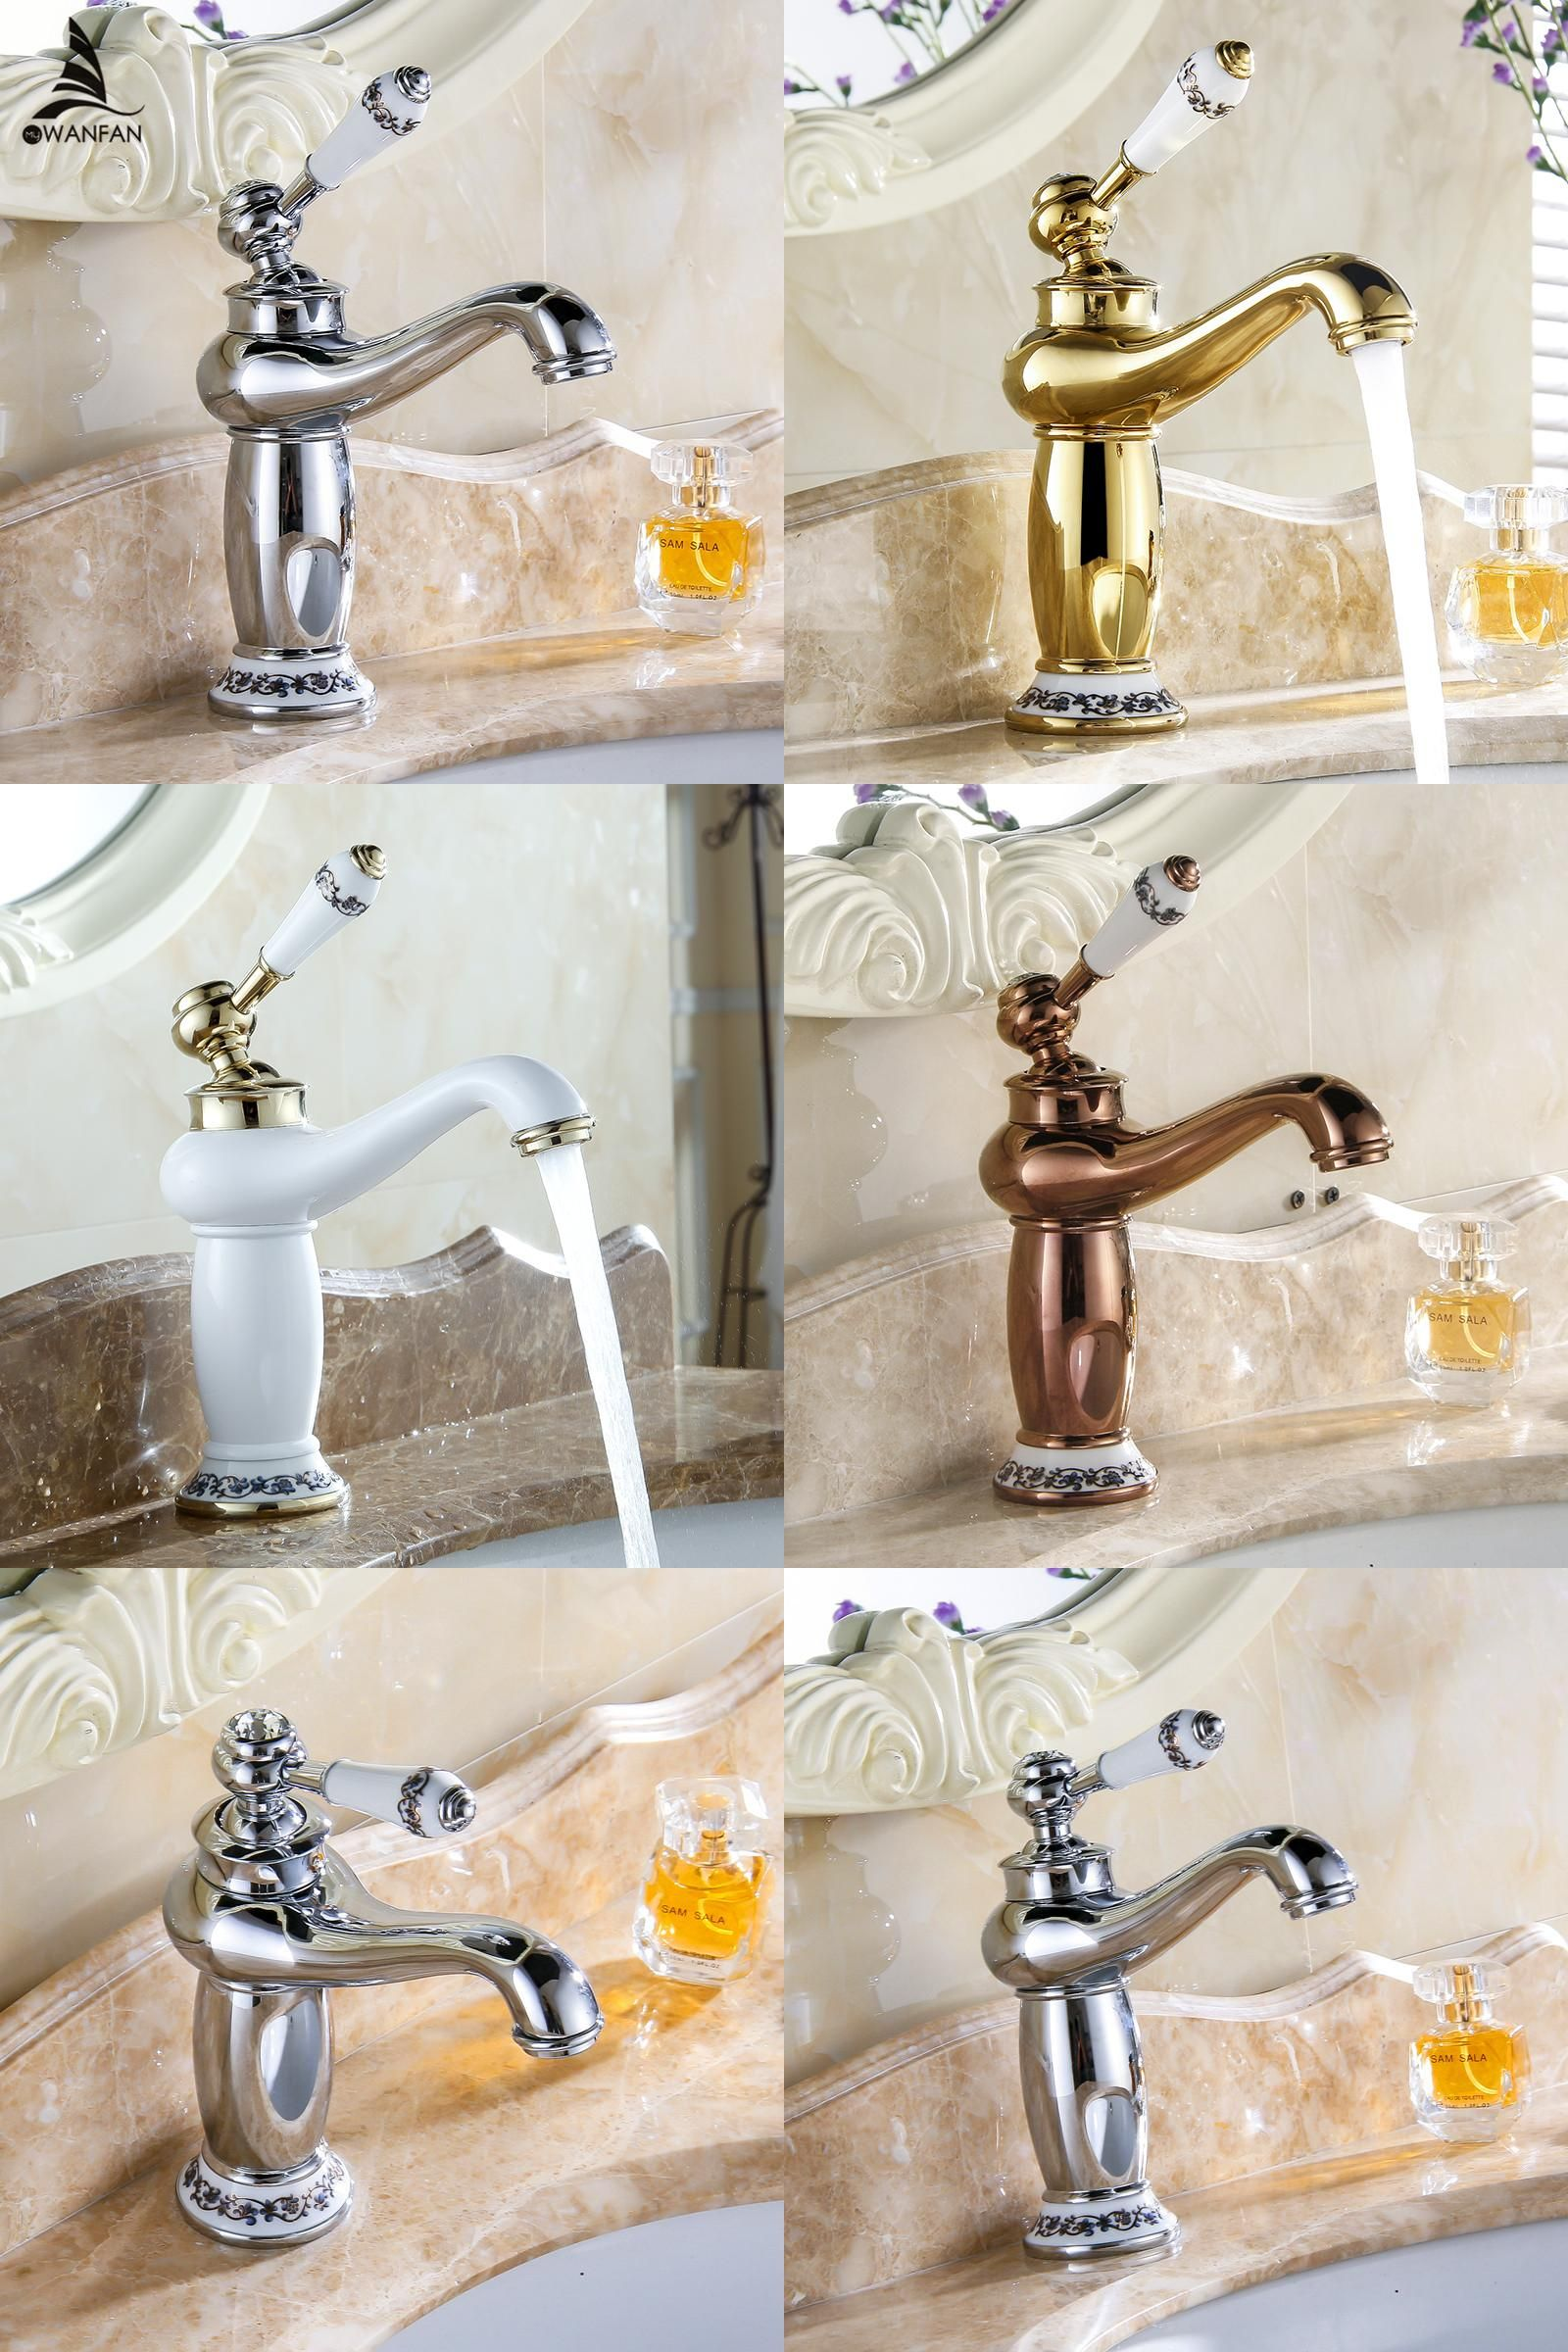 Visit to Buy] Free shipping New Arrival Bathroom Faucet Ceramic ...